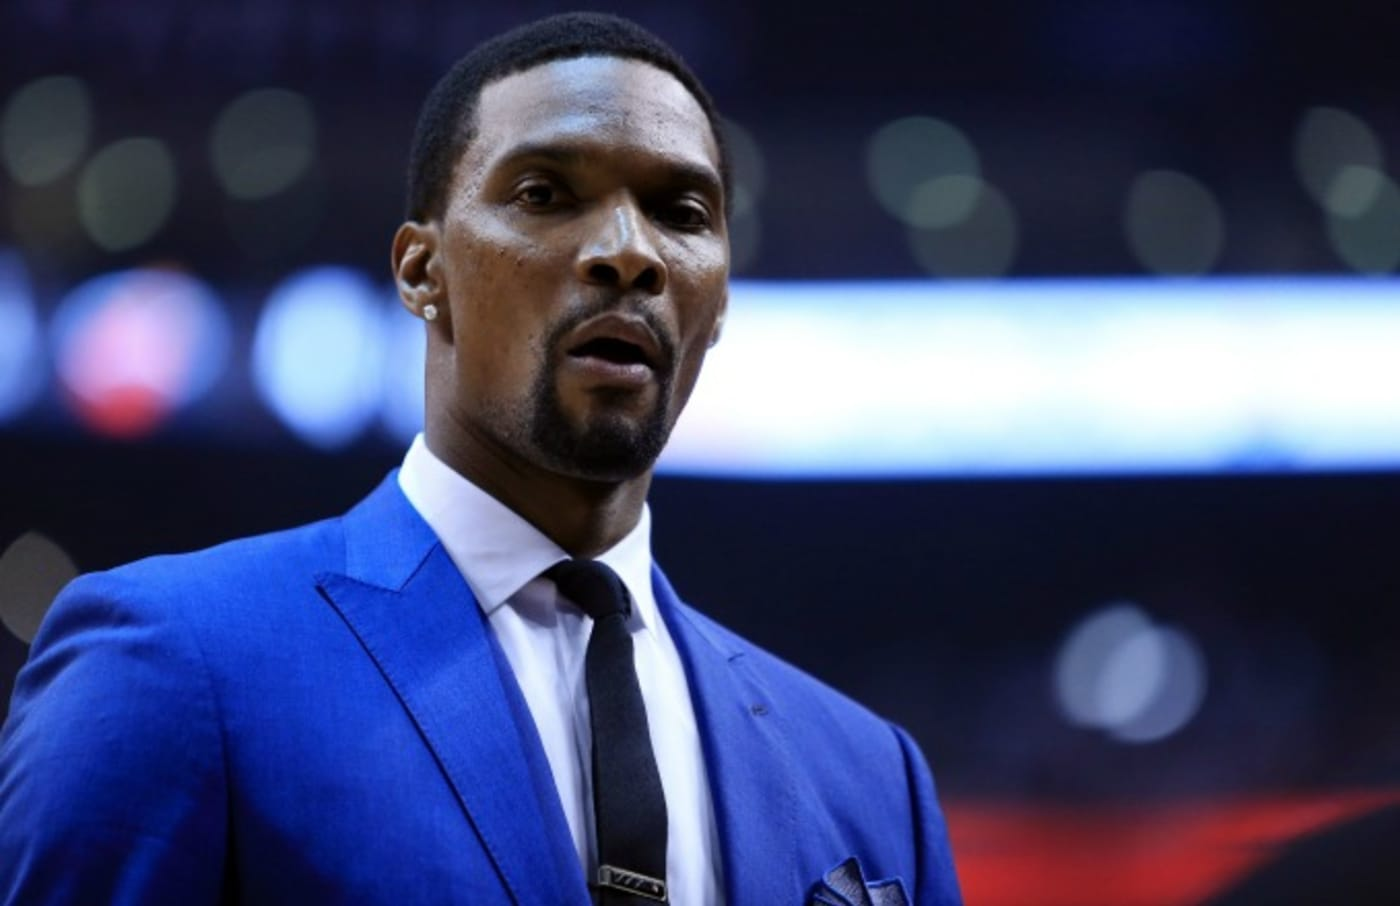 Chris Bosh sits on the bench during a game last season.